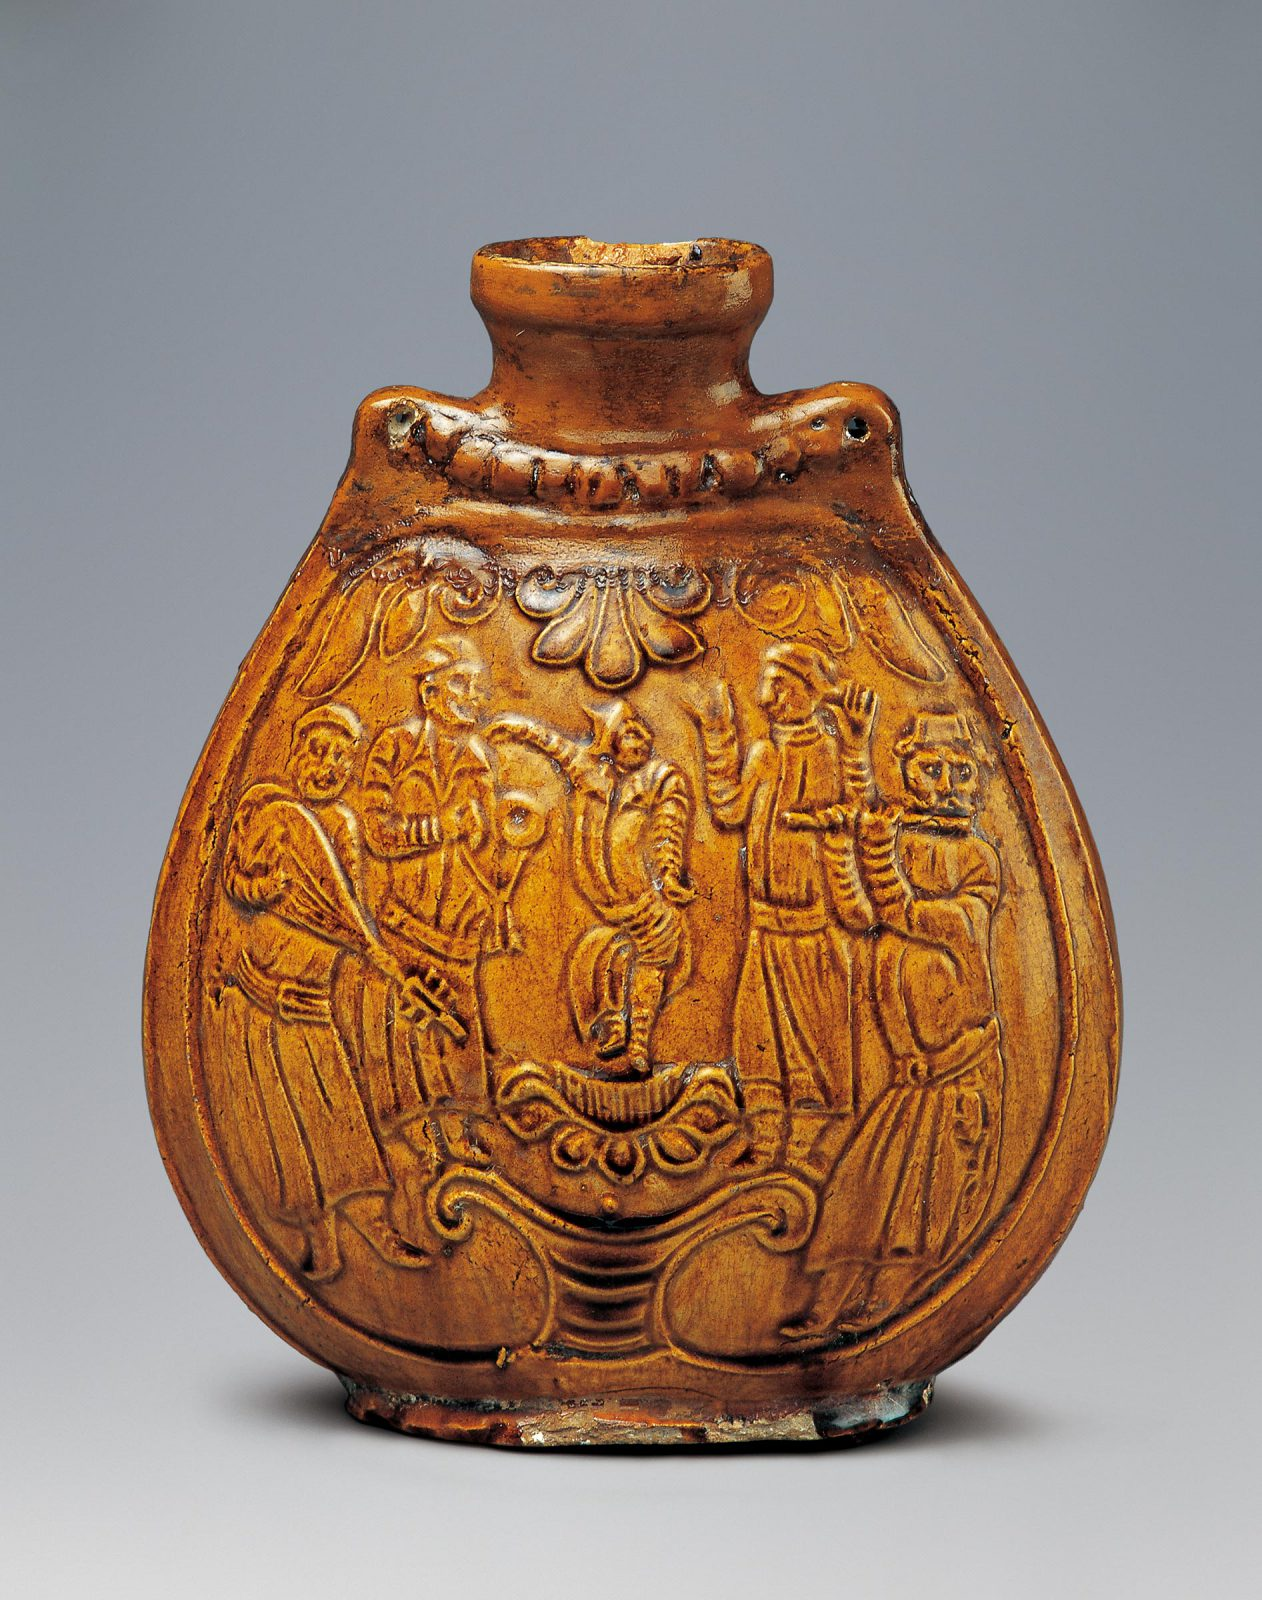 Flask with wide base and depiction of musicians